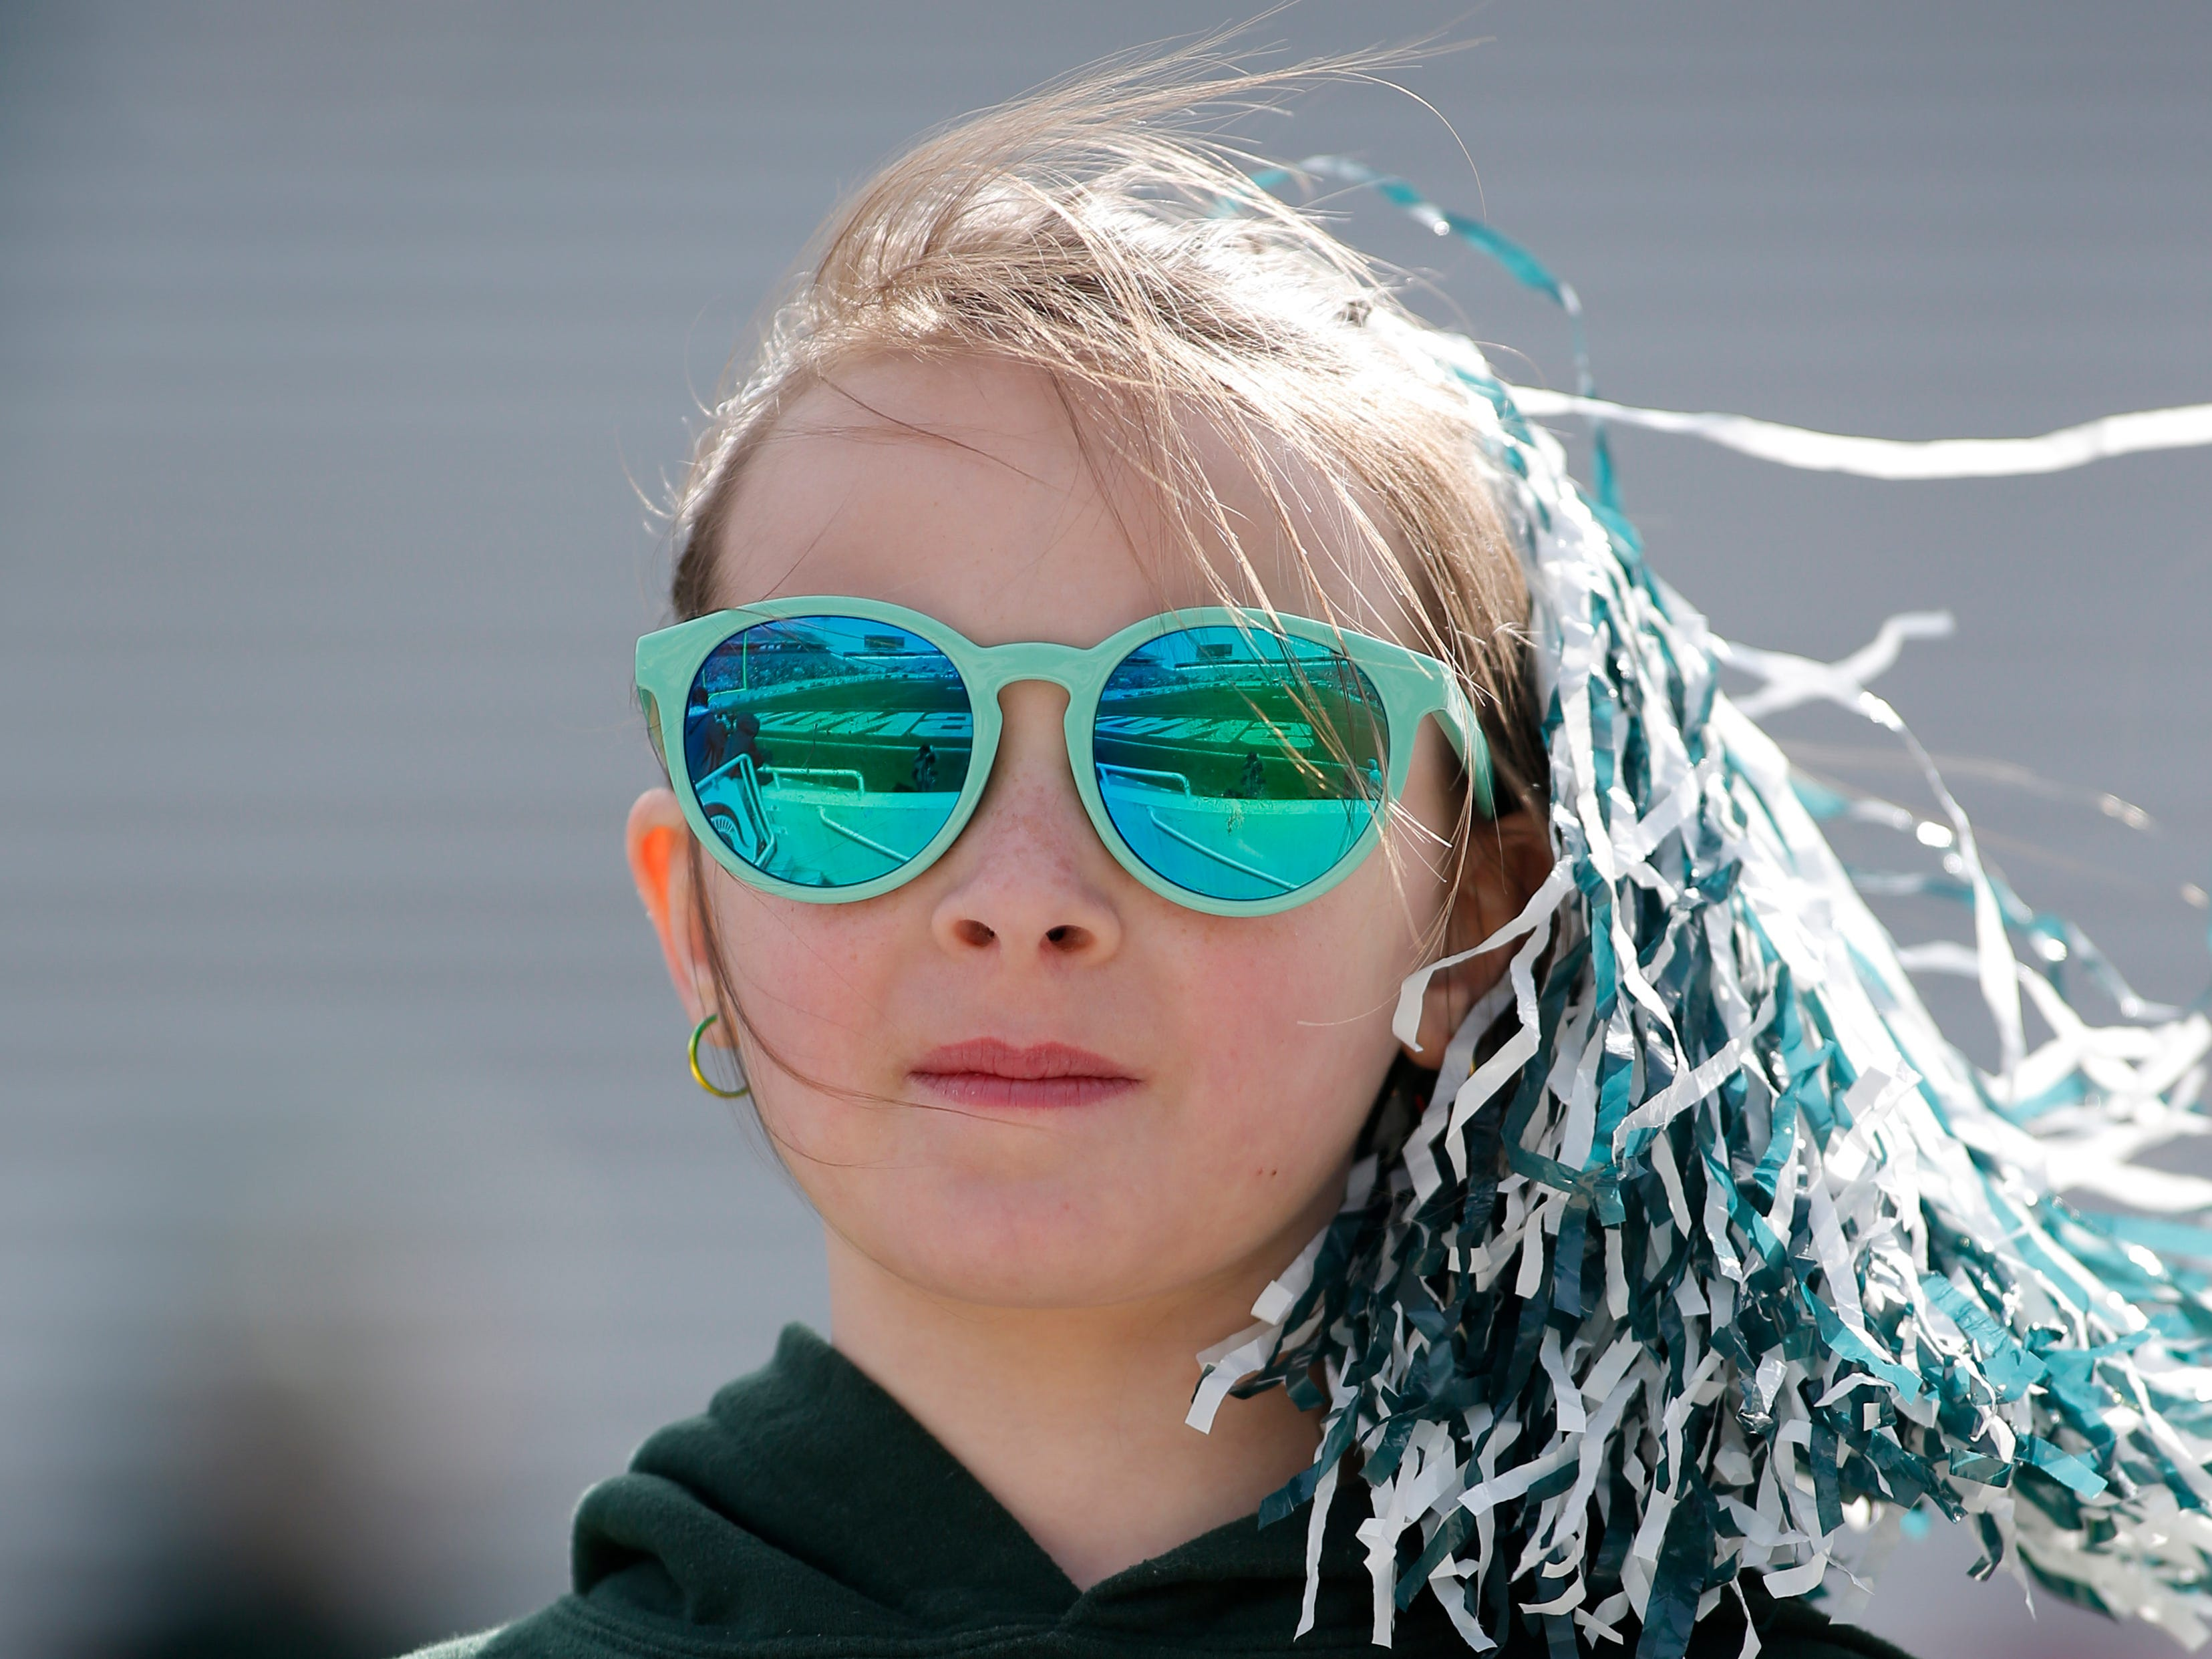 A young fan watches Michigan State's NCAA college football spring game, Saturday, April 13, 2019, in East Lansing, Mich. (AP Photo/Al Goldis)